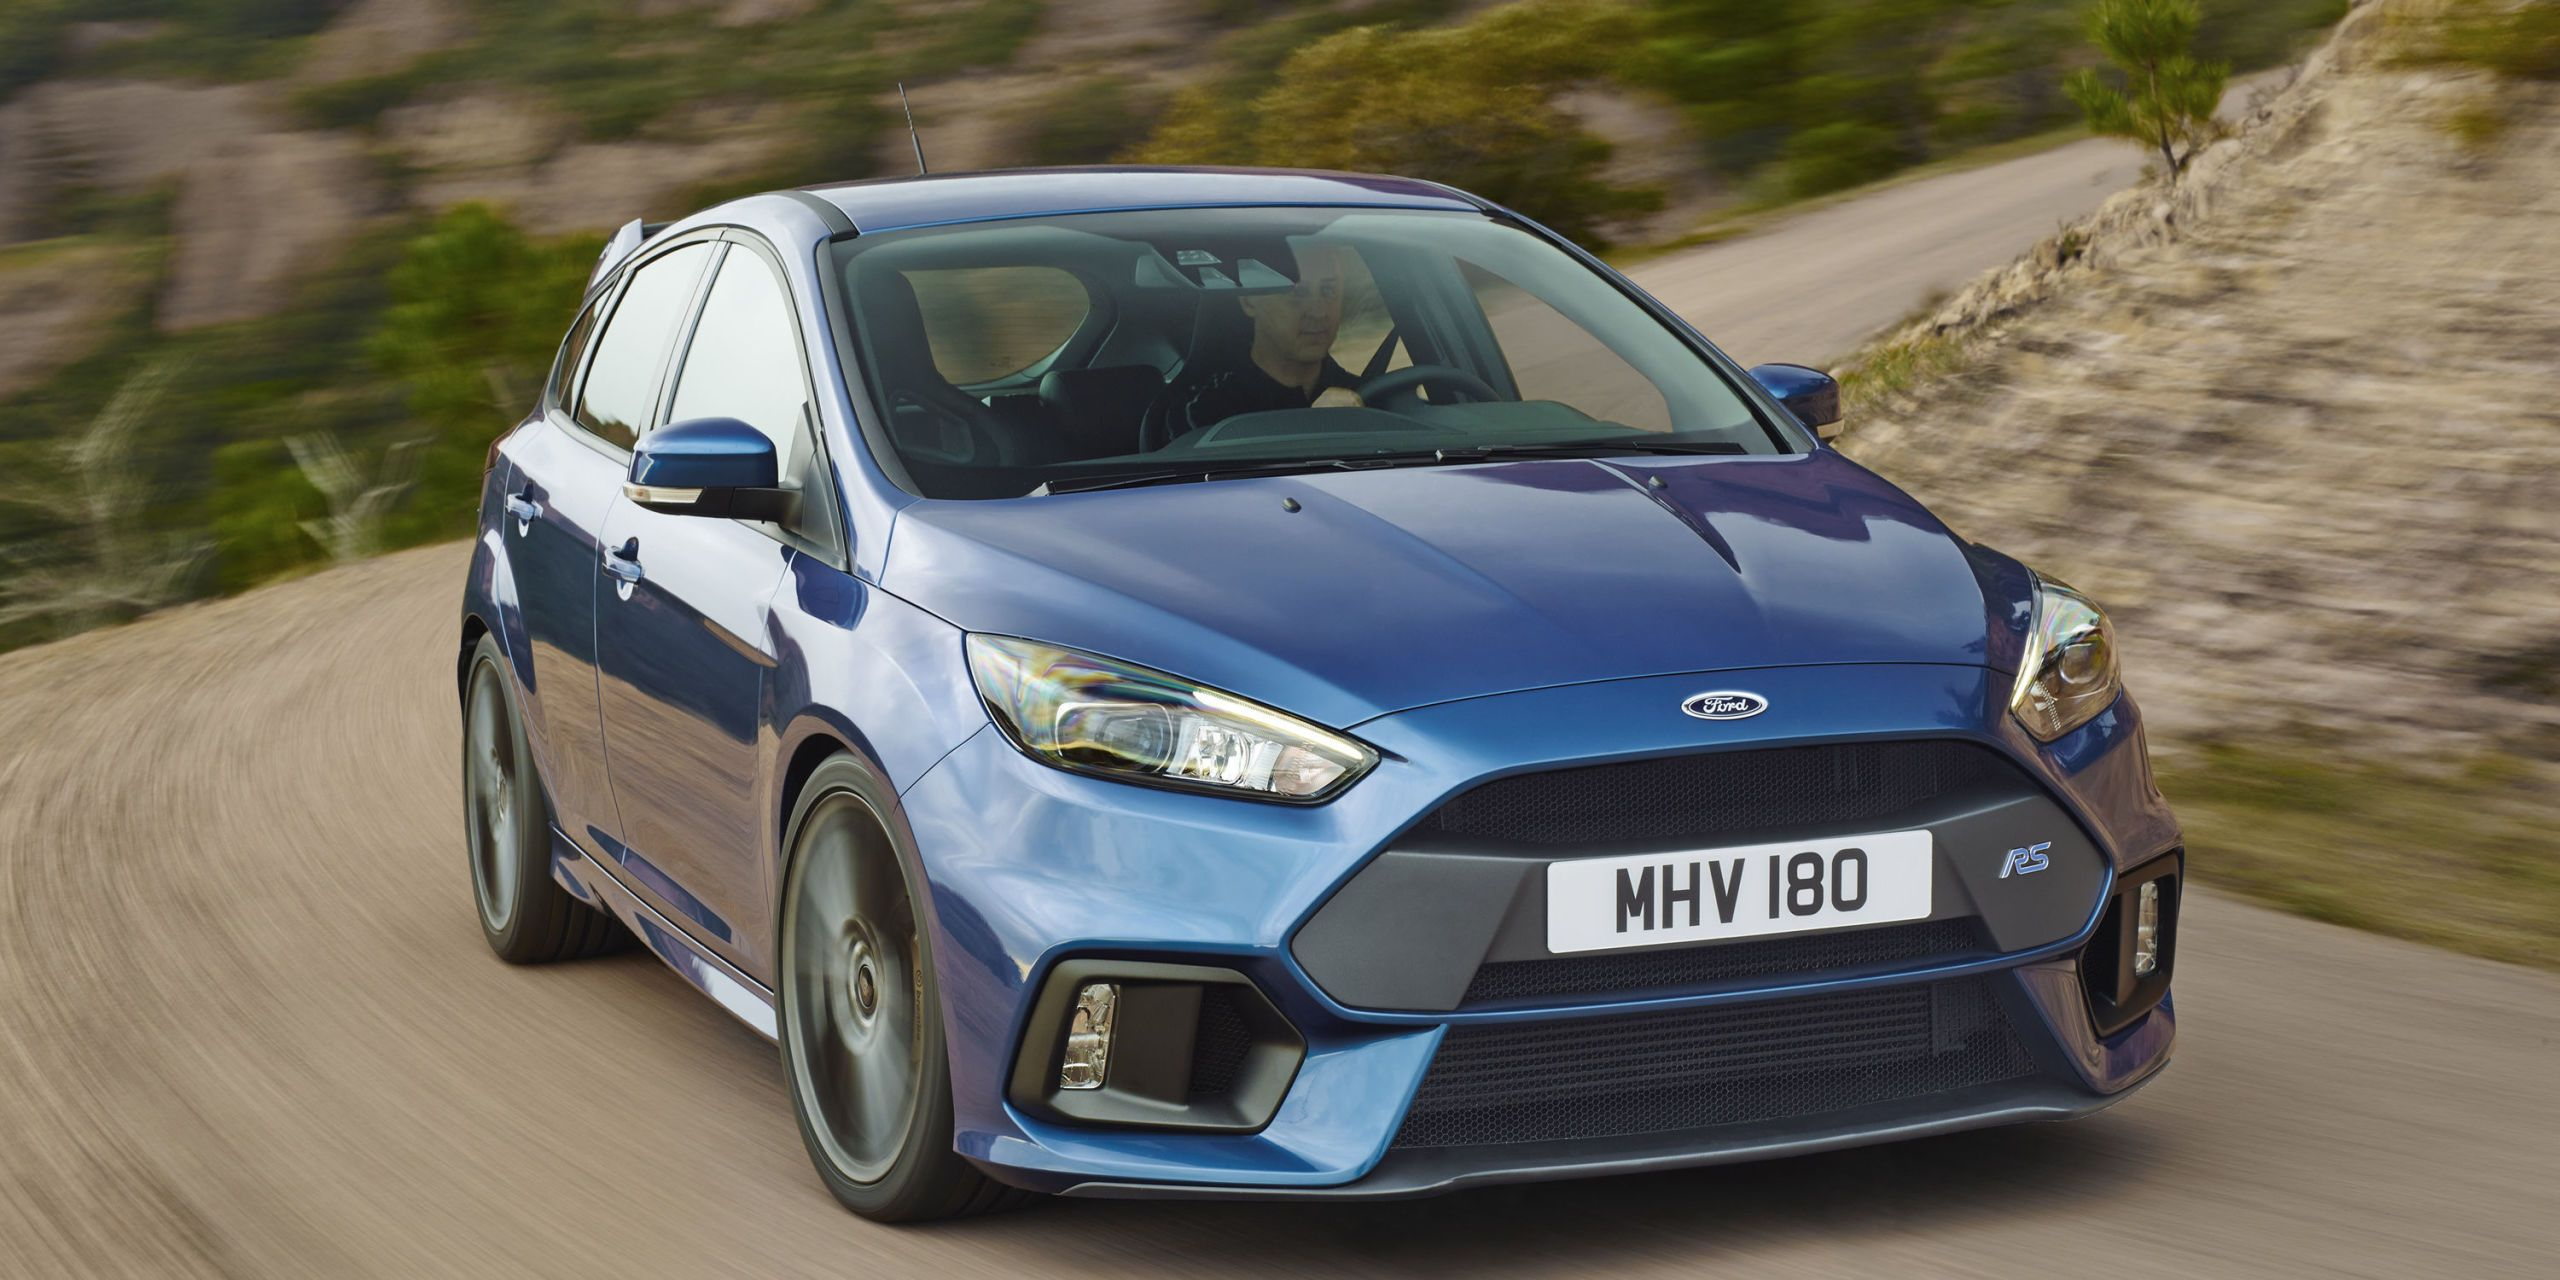 Ford Focus Rs Drift Mode Explained Ford Focus Focus Rs New